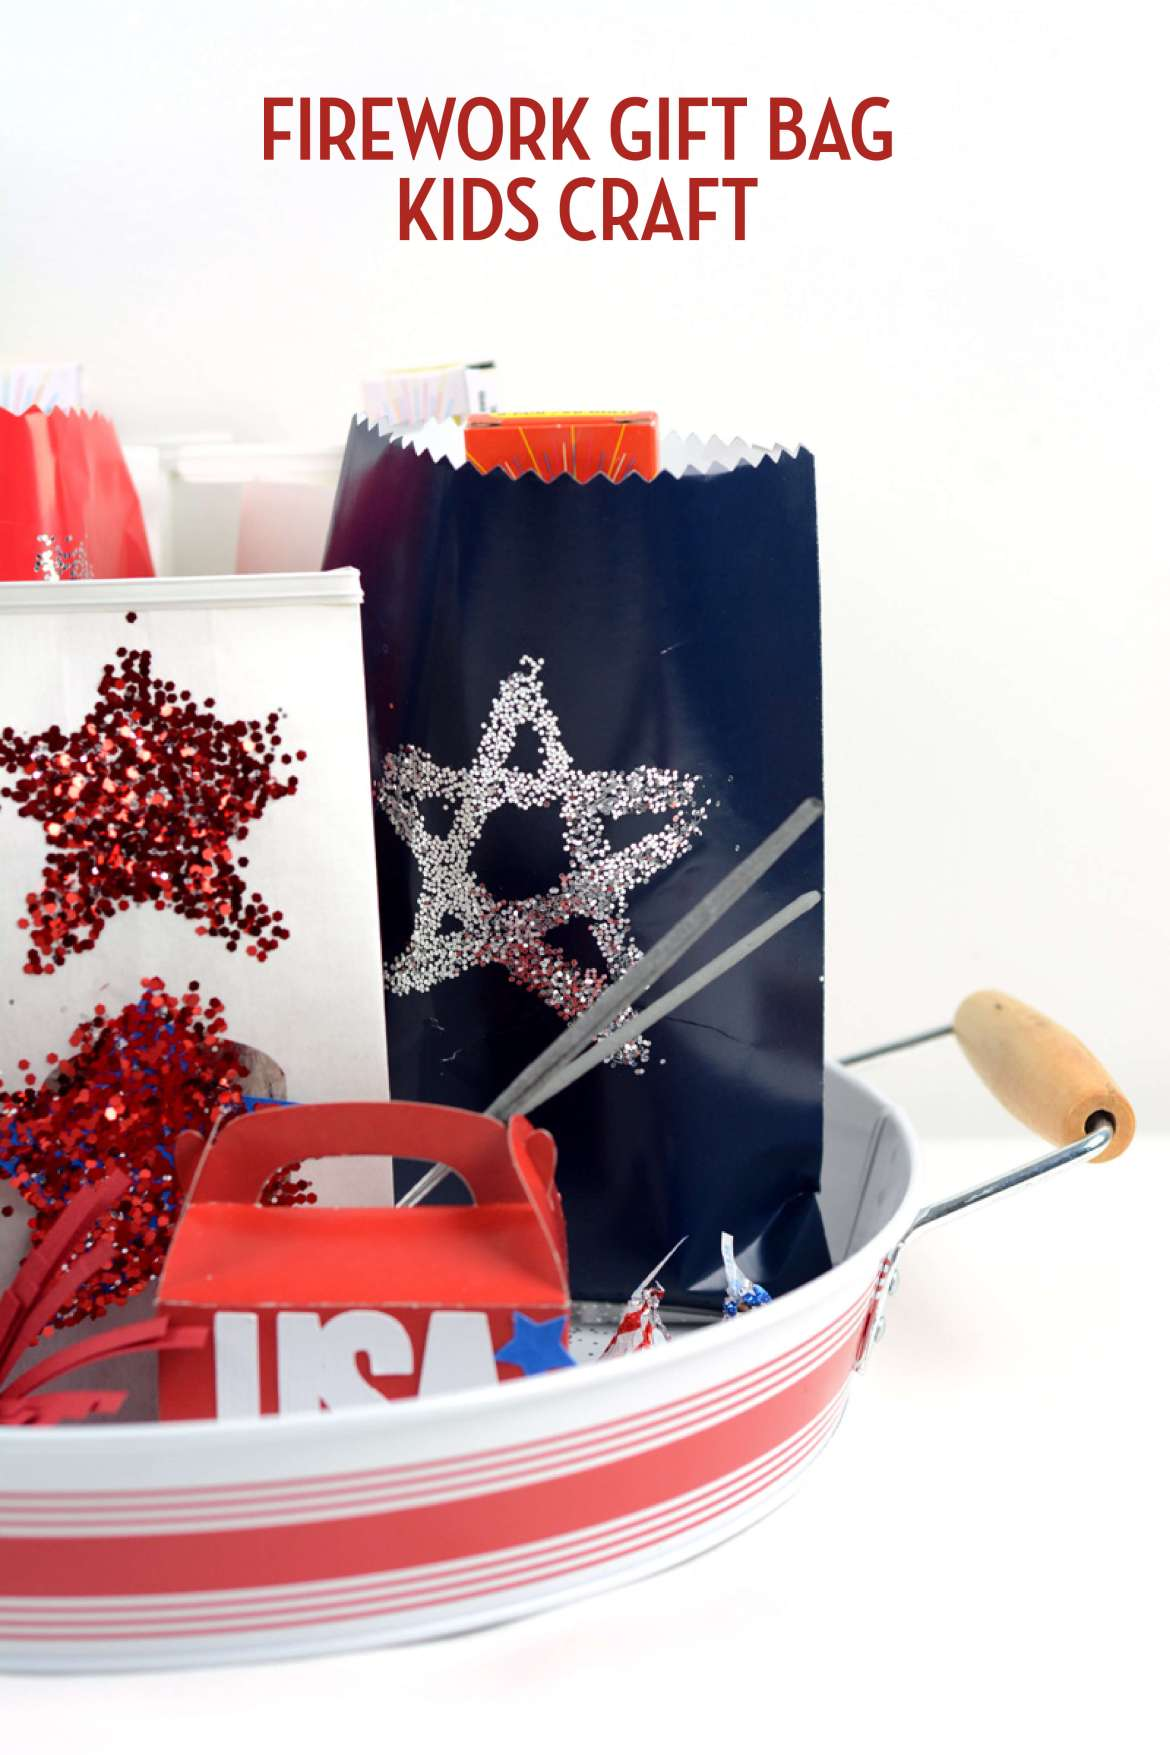 These firework gift bags are an easy 4th of July Craft for Kids by Amy Robison on Love the Day